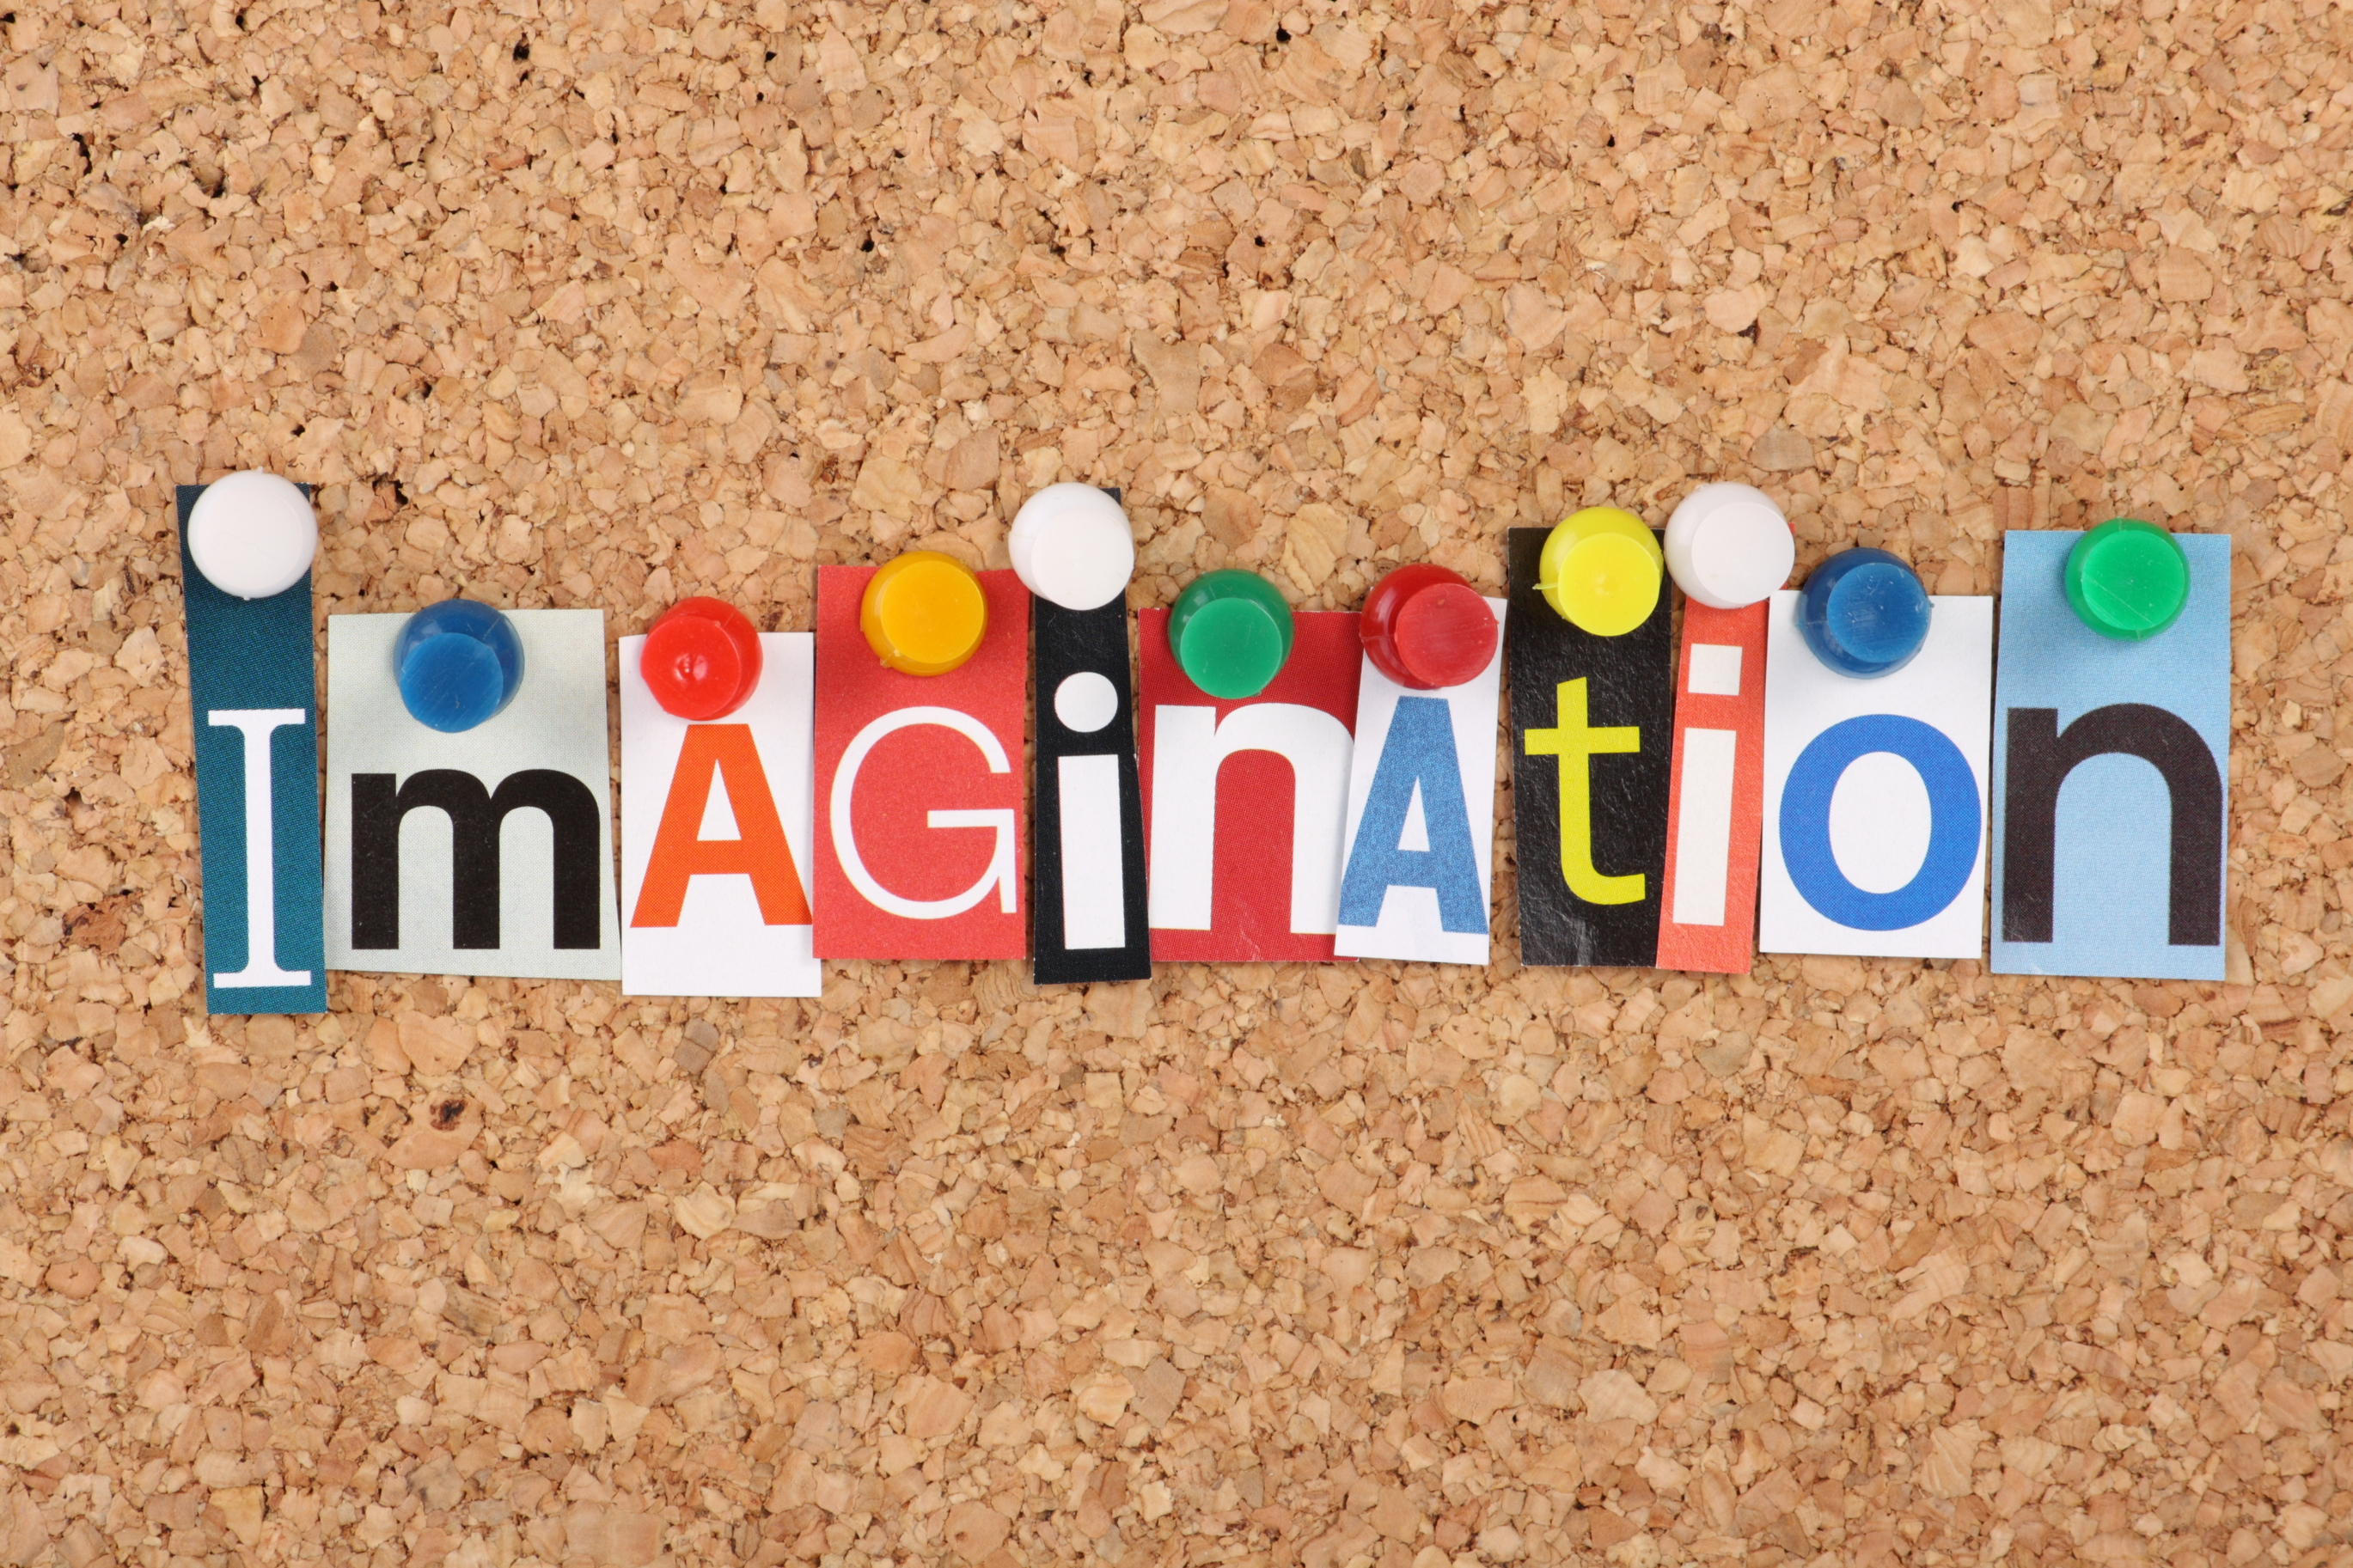 http://www.dreamstime.com/royalty-free-stock-image-imagination-image17766376